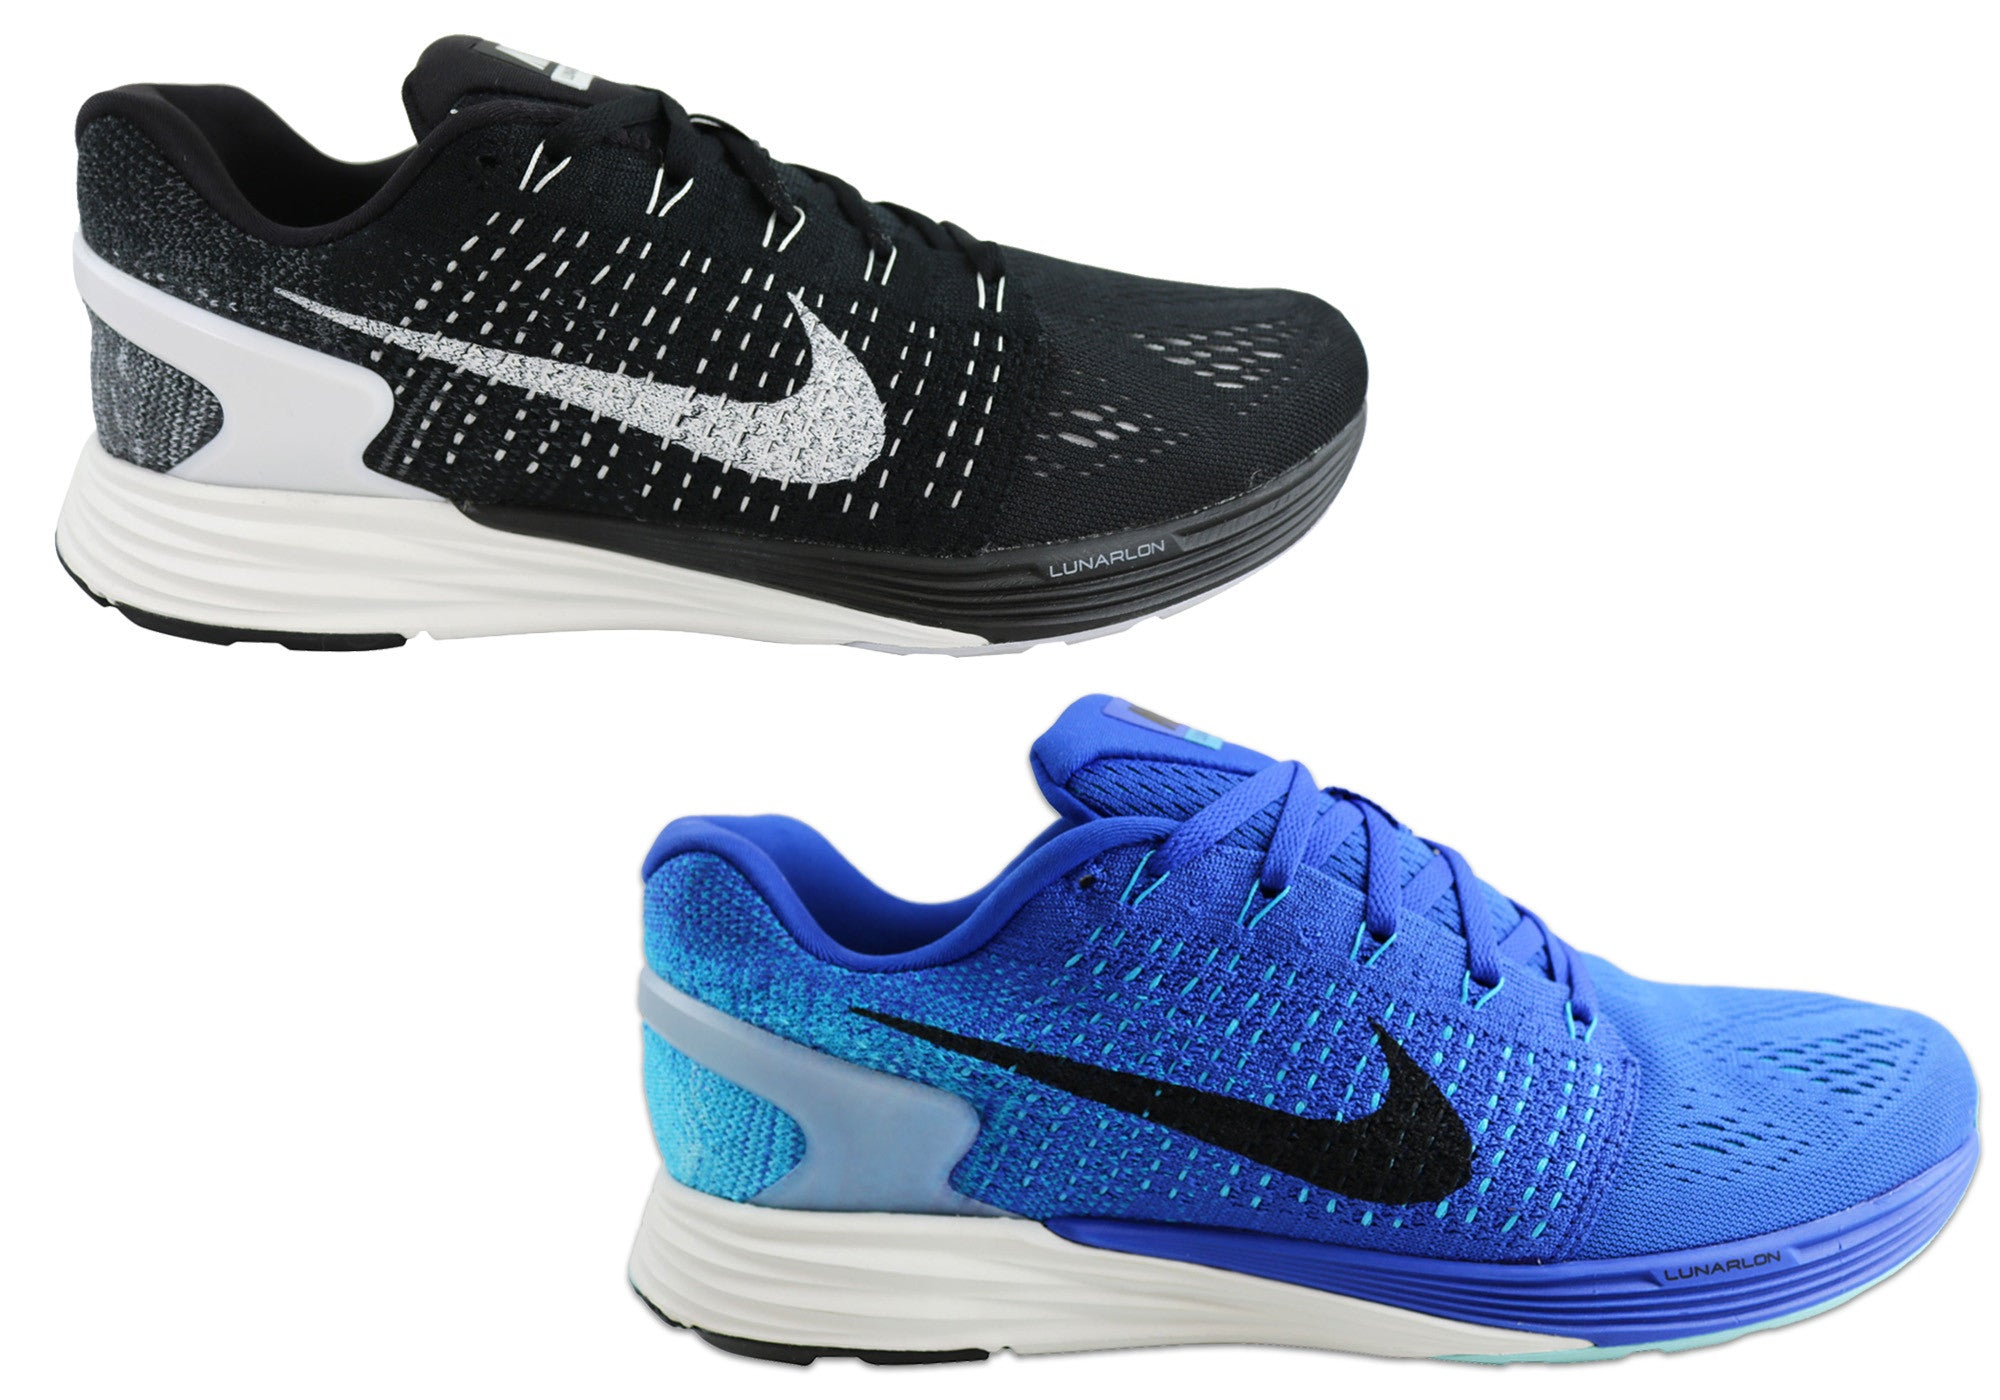 new products 9c919 d212d New Mens Nike Lunarglide 7 Cushioned Light Weight Running Sport ...